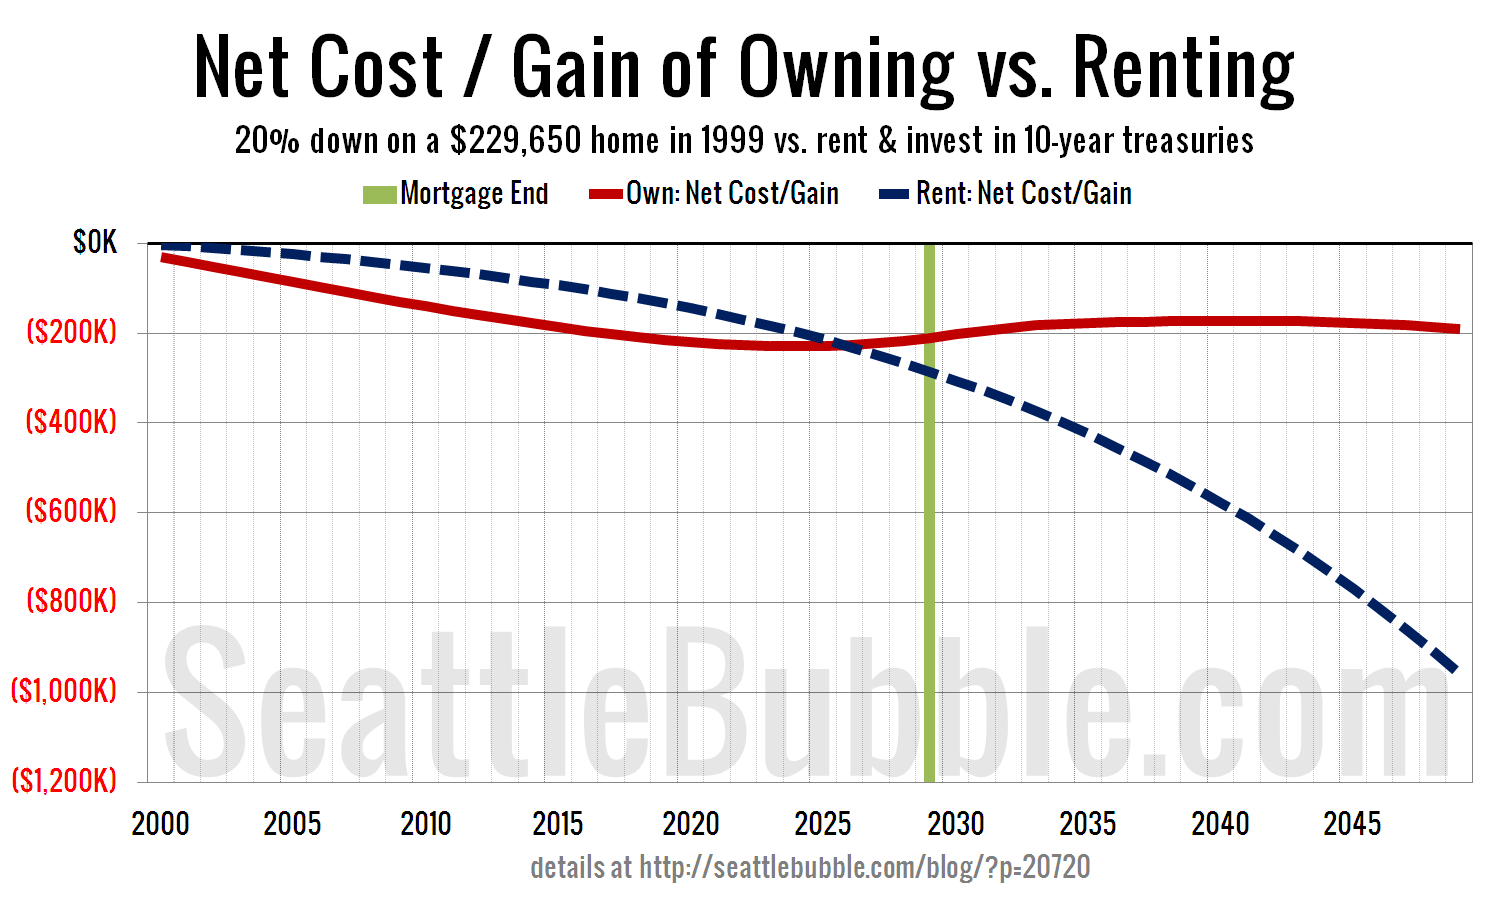 Net Cost / Gain of Owning vs. Renting